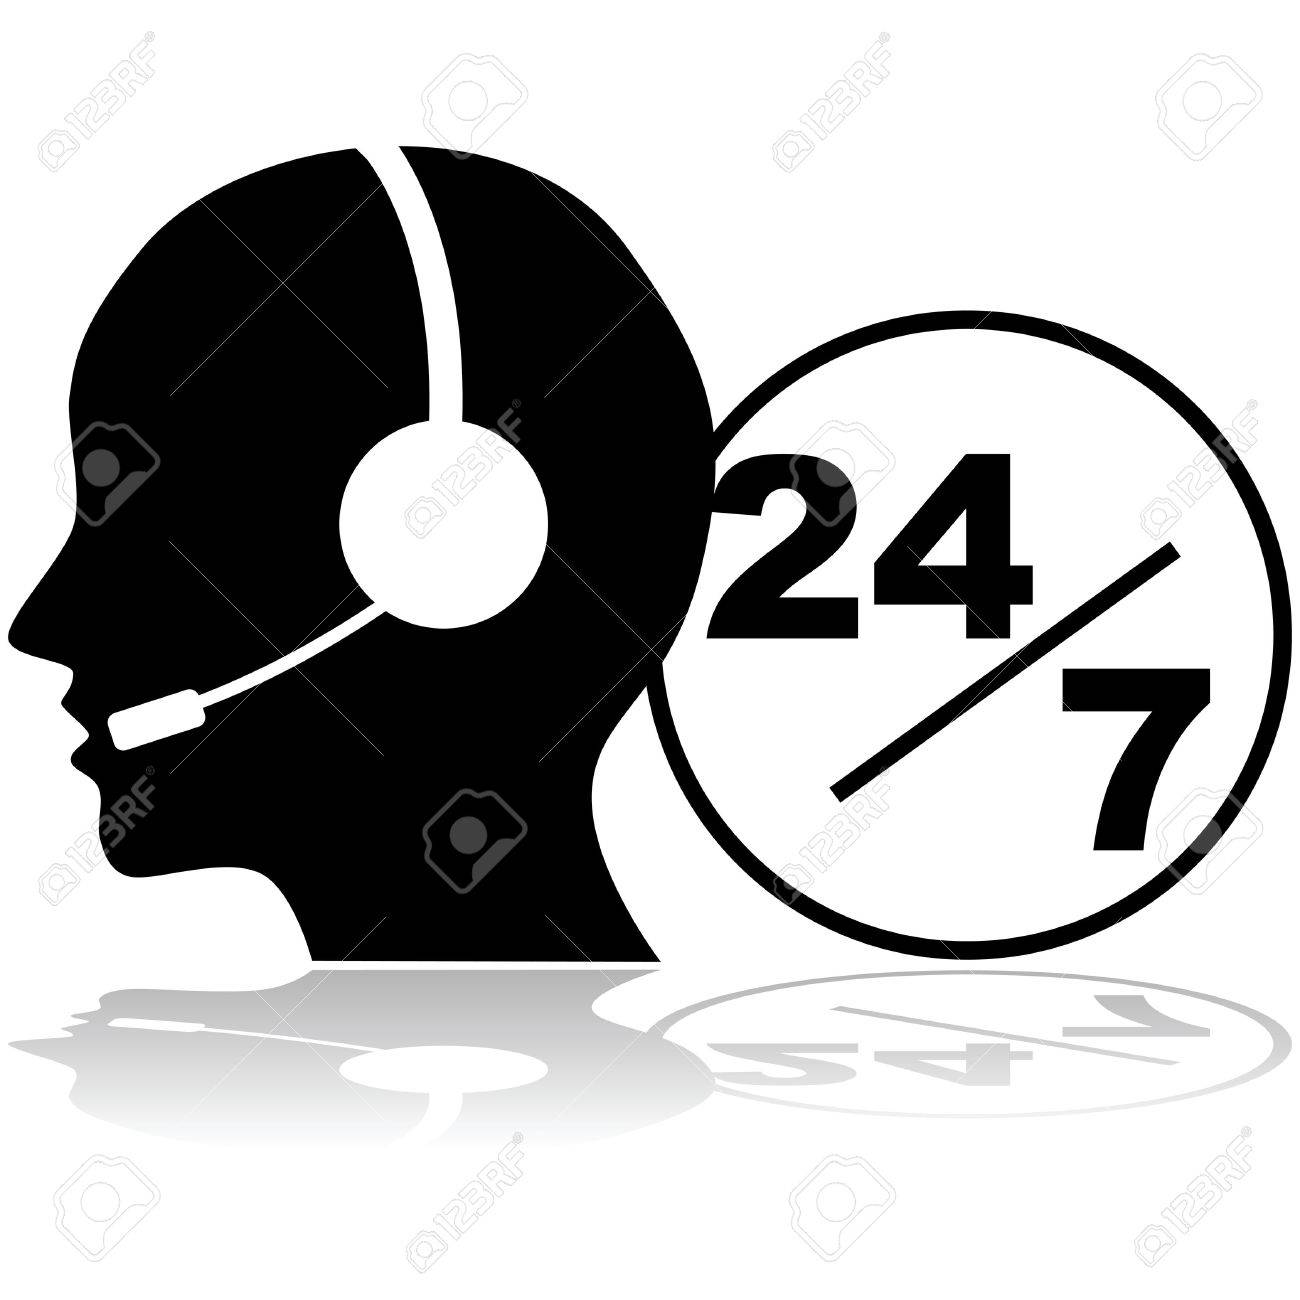 jobs available cliparts stock vector and royalty jobs jobs available icon showing a person a headset providing phone support 24 hours a